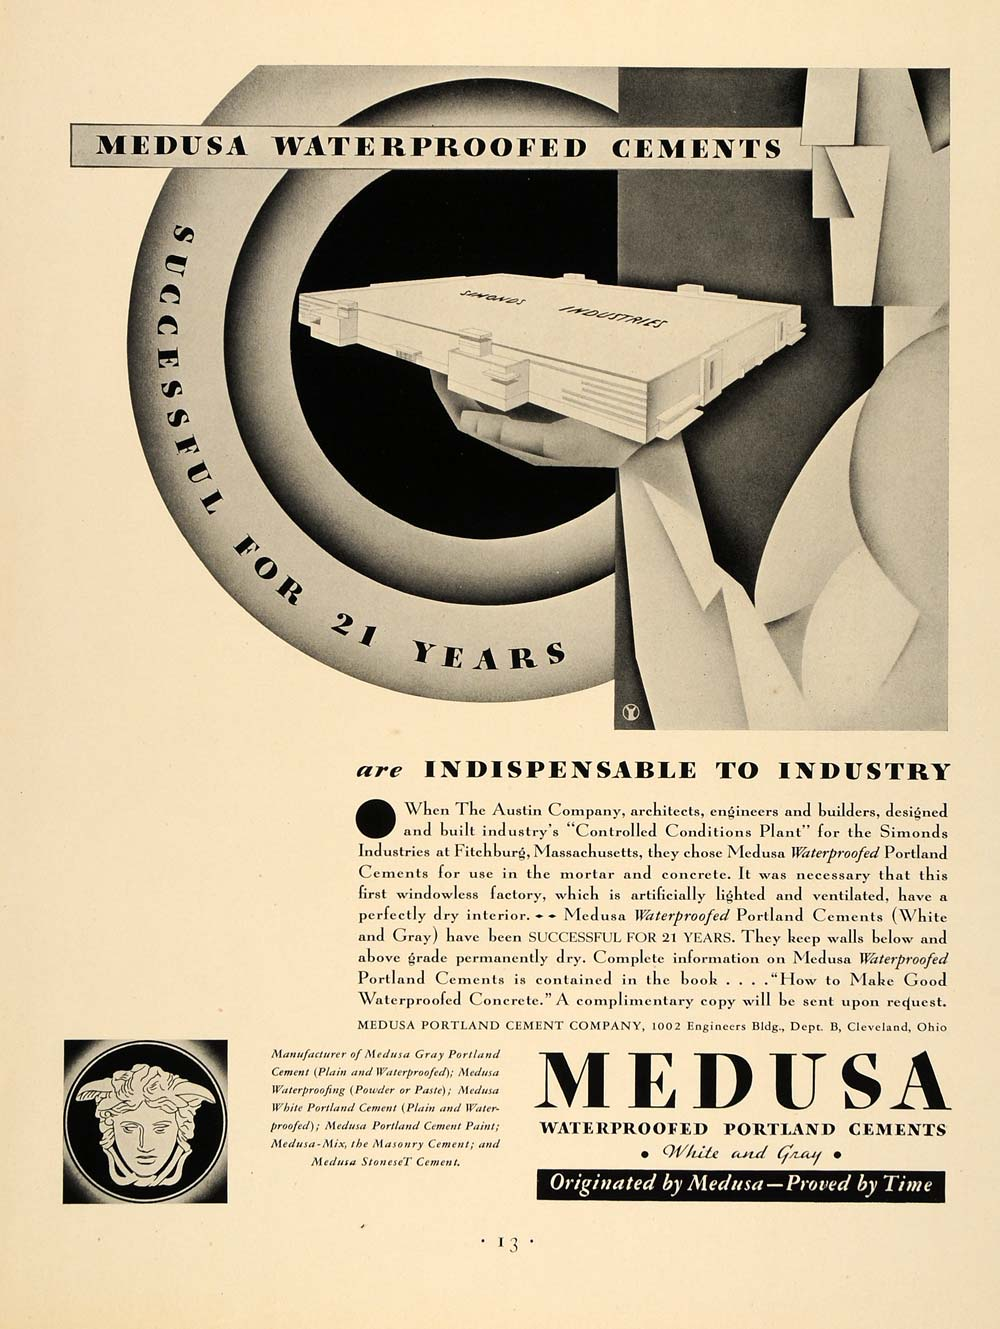 1931 Ad Medusa Waterproofed Portland Cements Concrete - ORIGINAL ADVERTISING F1A